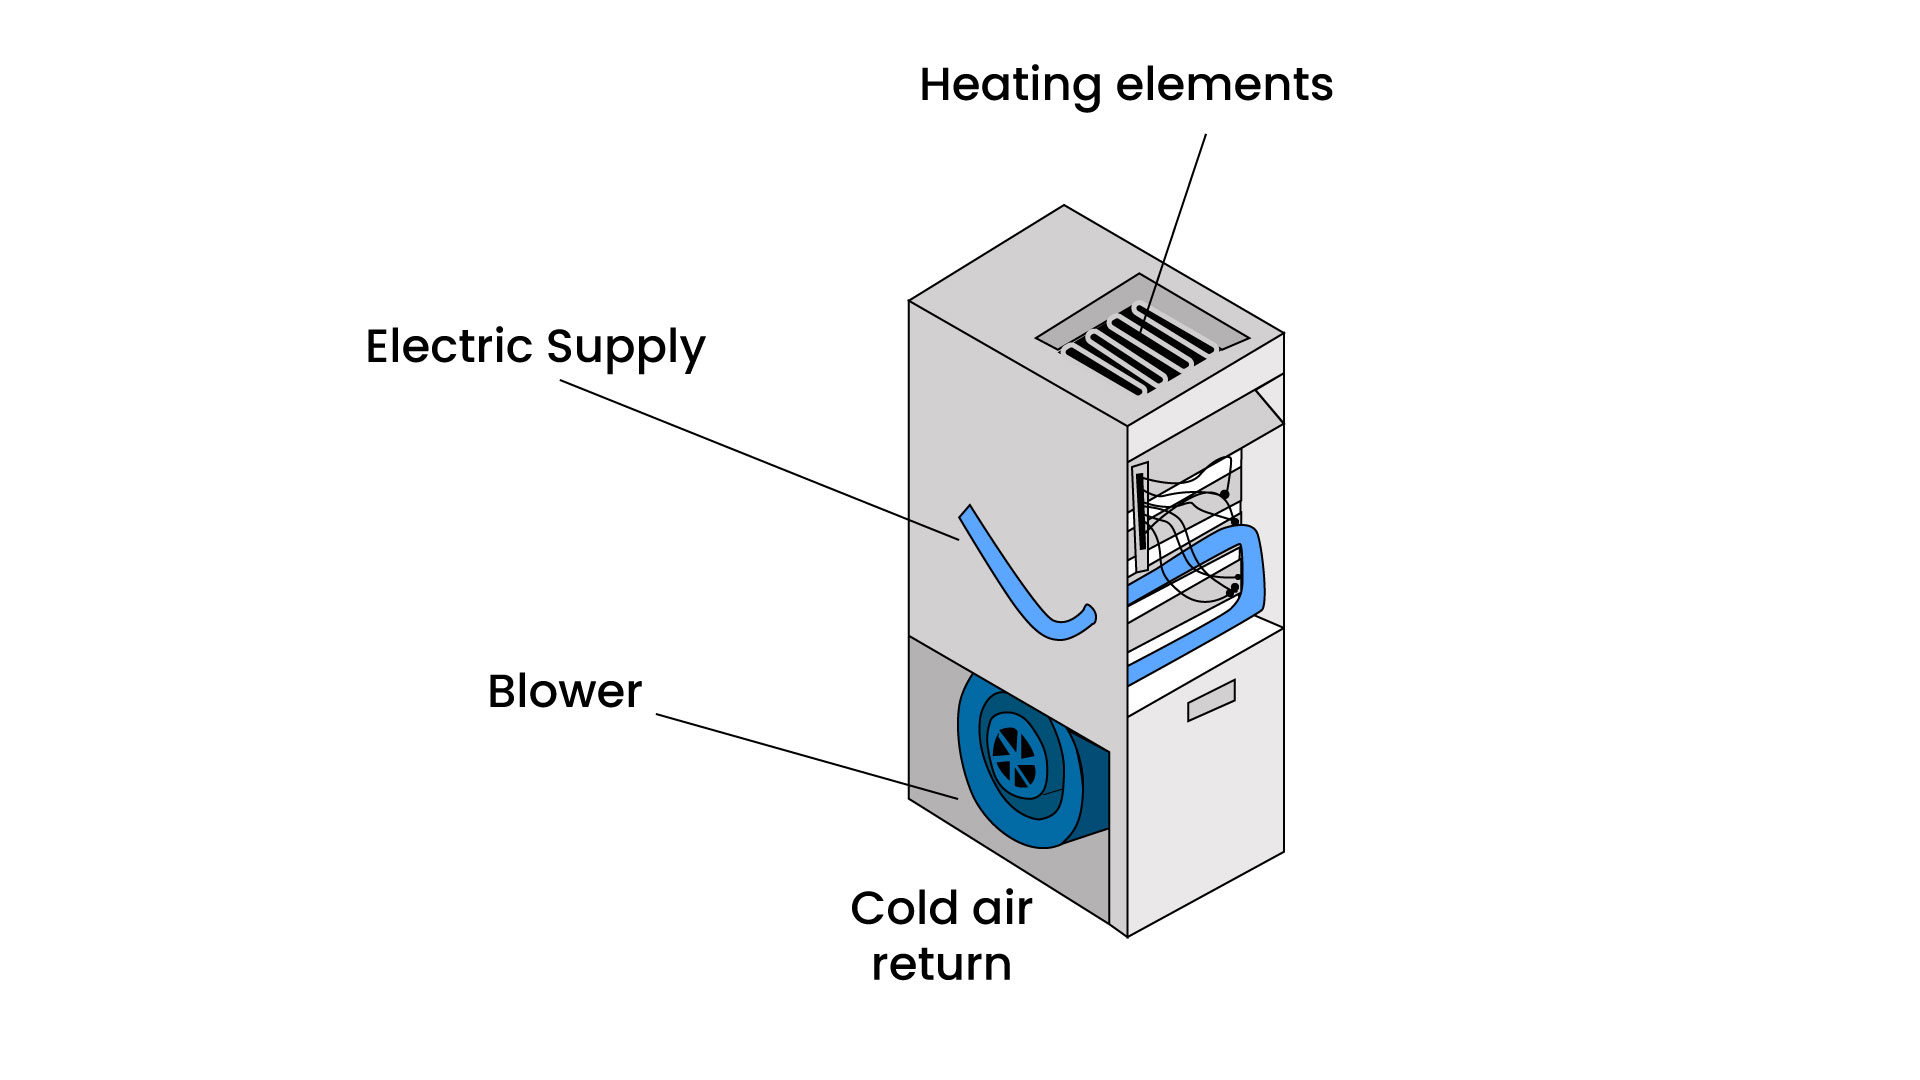 Parts of an electric heating system.